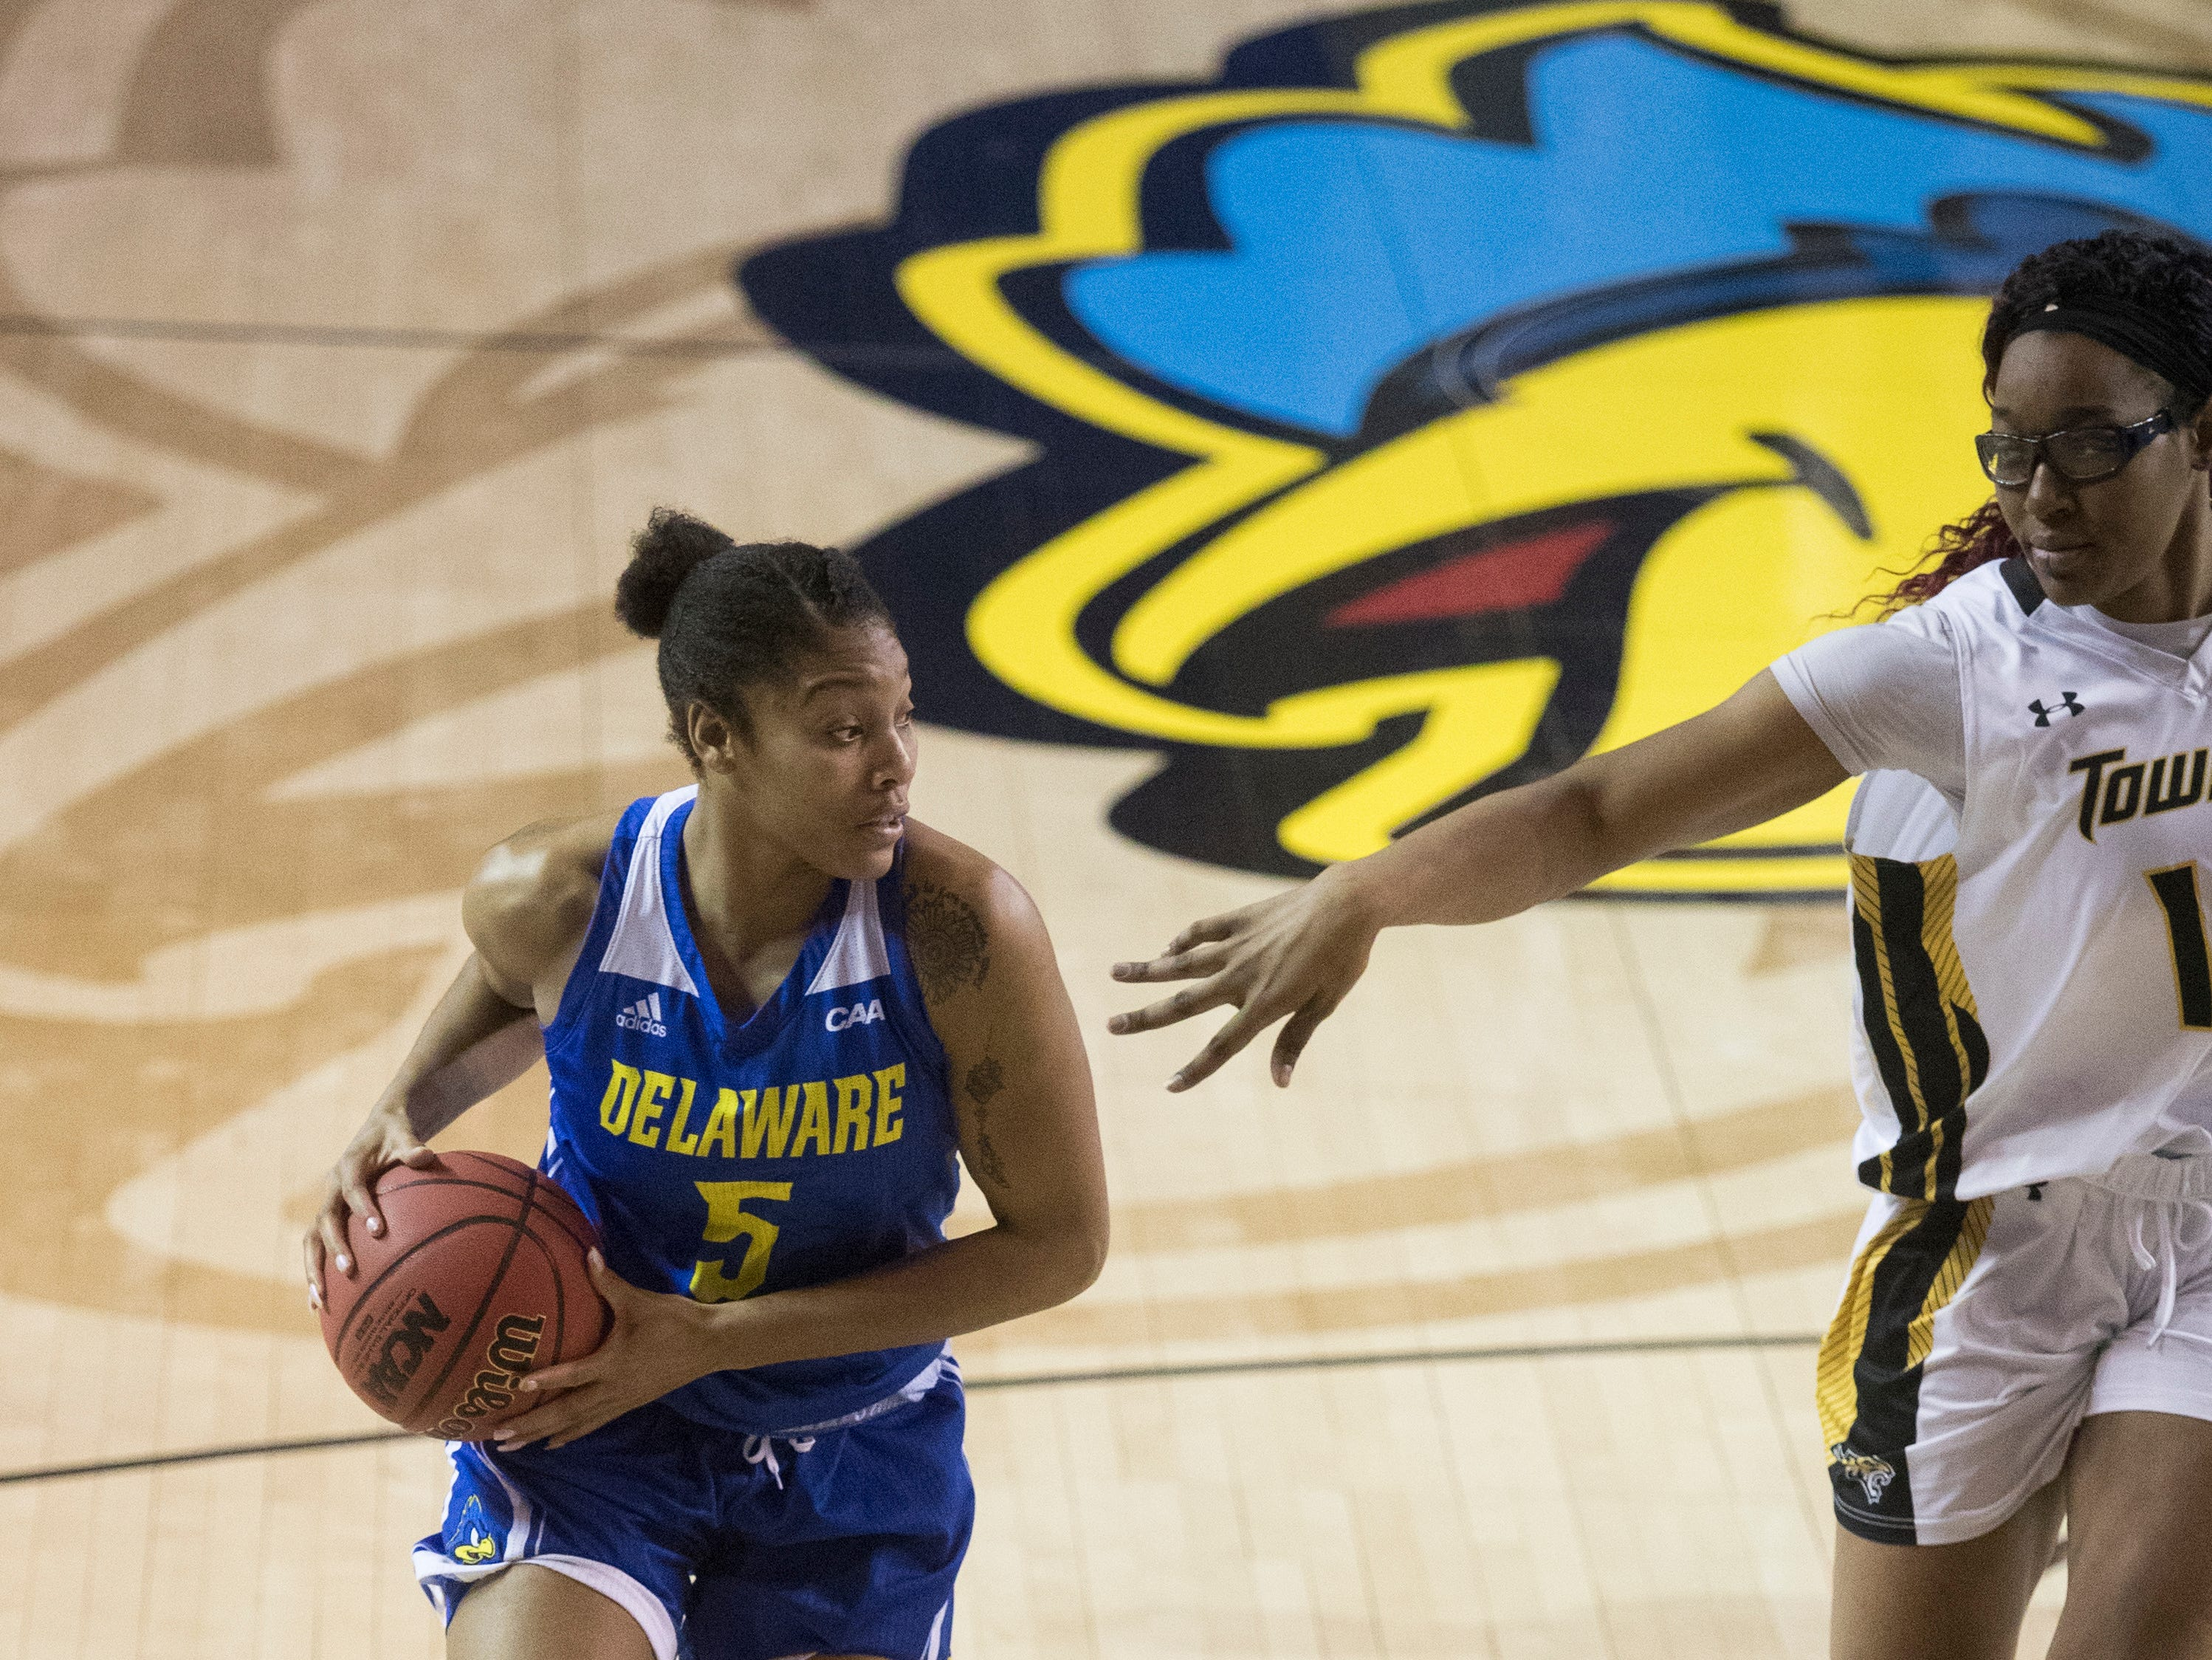 Delaware's Makeda Nicholas (5) looks for an open teammate Thursday night against Towson in the CAA quarterfinals. Towson defeated Delaware 59-49.